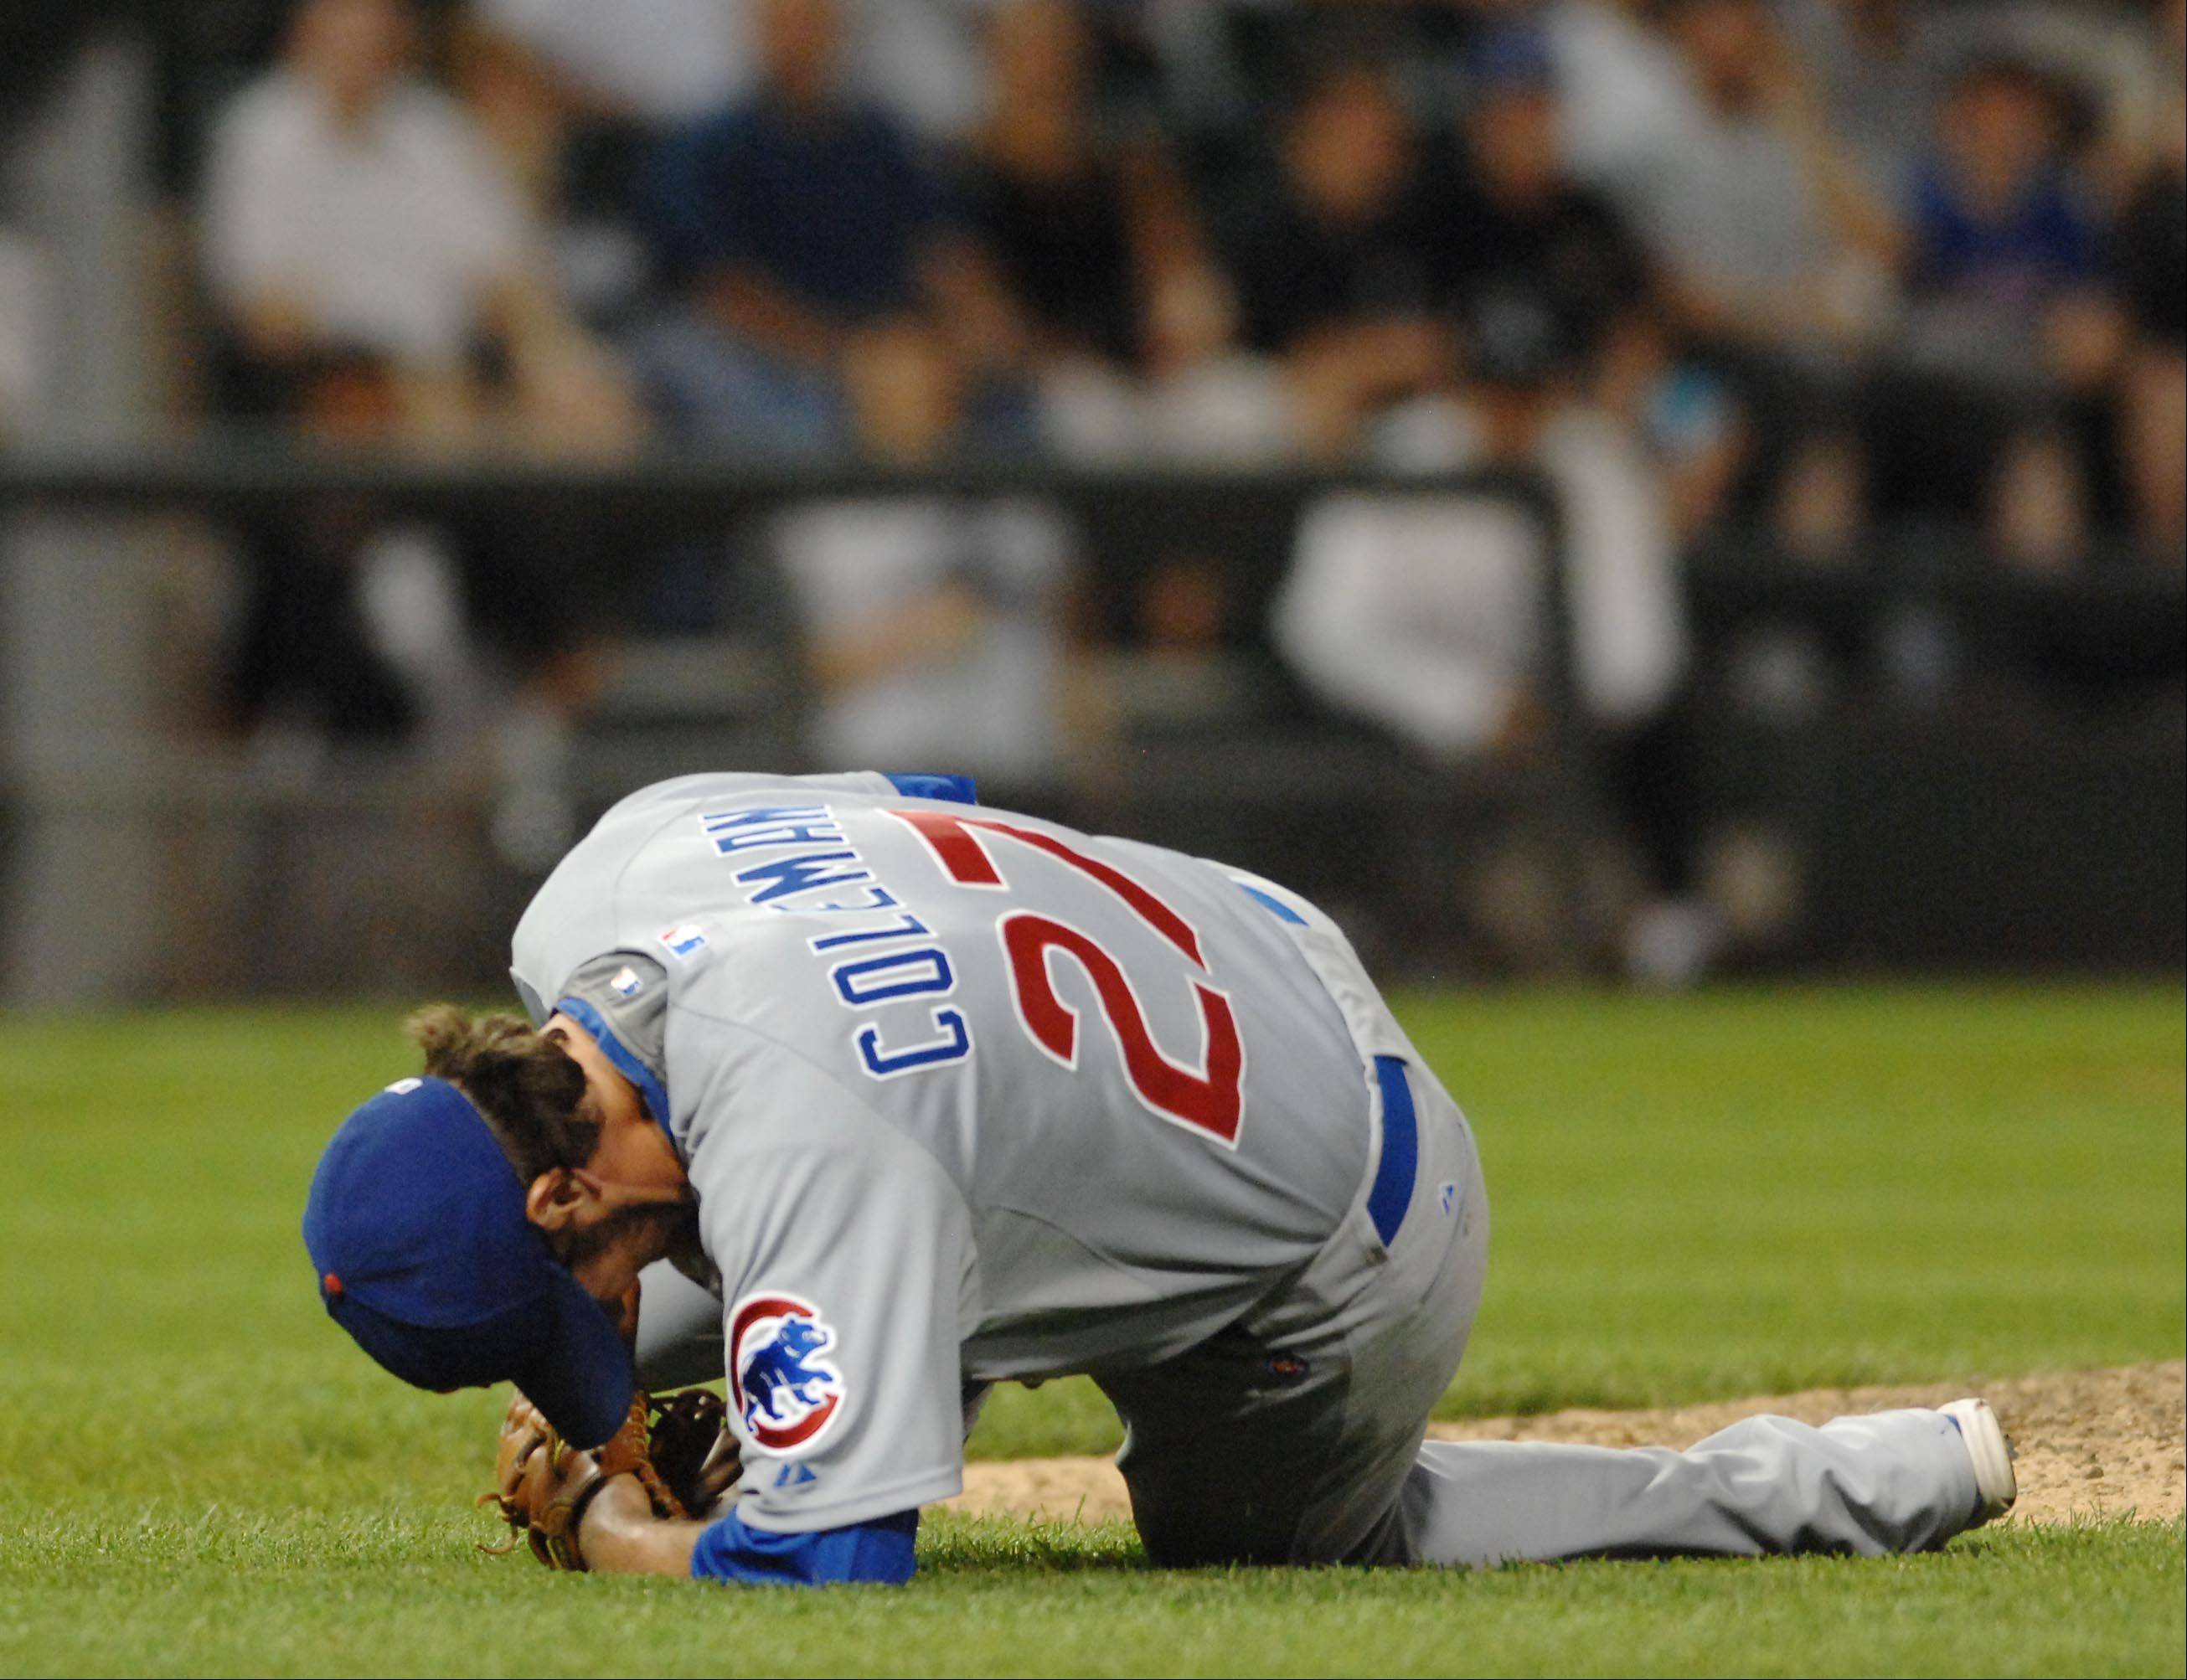 Chicago Cubs relief pitcher Casey Coleman falls to the turf after getting hit with a broken bat in the seventh inning.